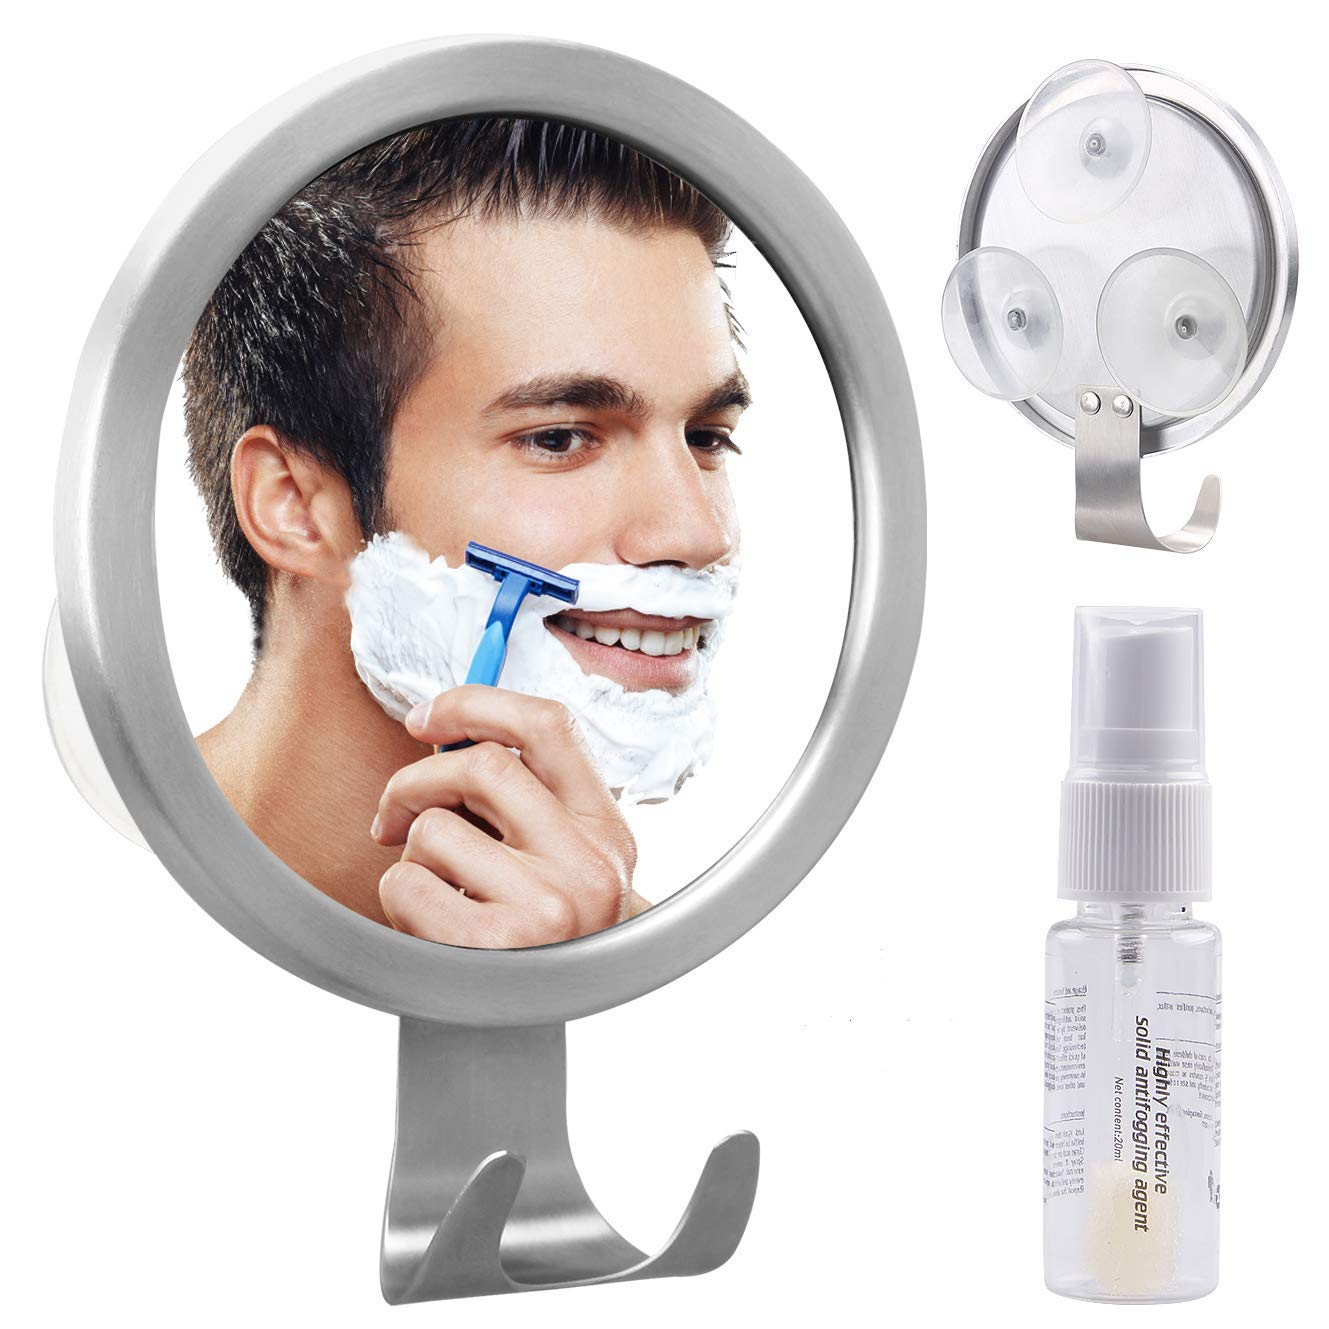 Shower Mirror, LUXEAR Fog Free Mirror for Shower with Suction Razor Hook Comes with Anti-Fog Agent, Antifog Mirror Shower Ideal for Bathroom Mirror, Shower Mirror and Traveling by LUXEAR